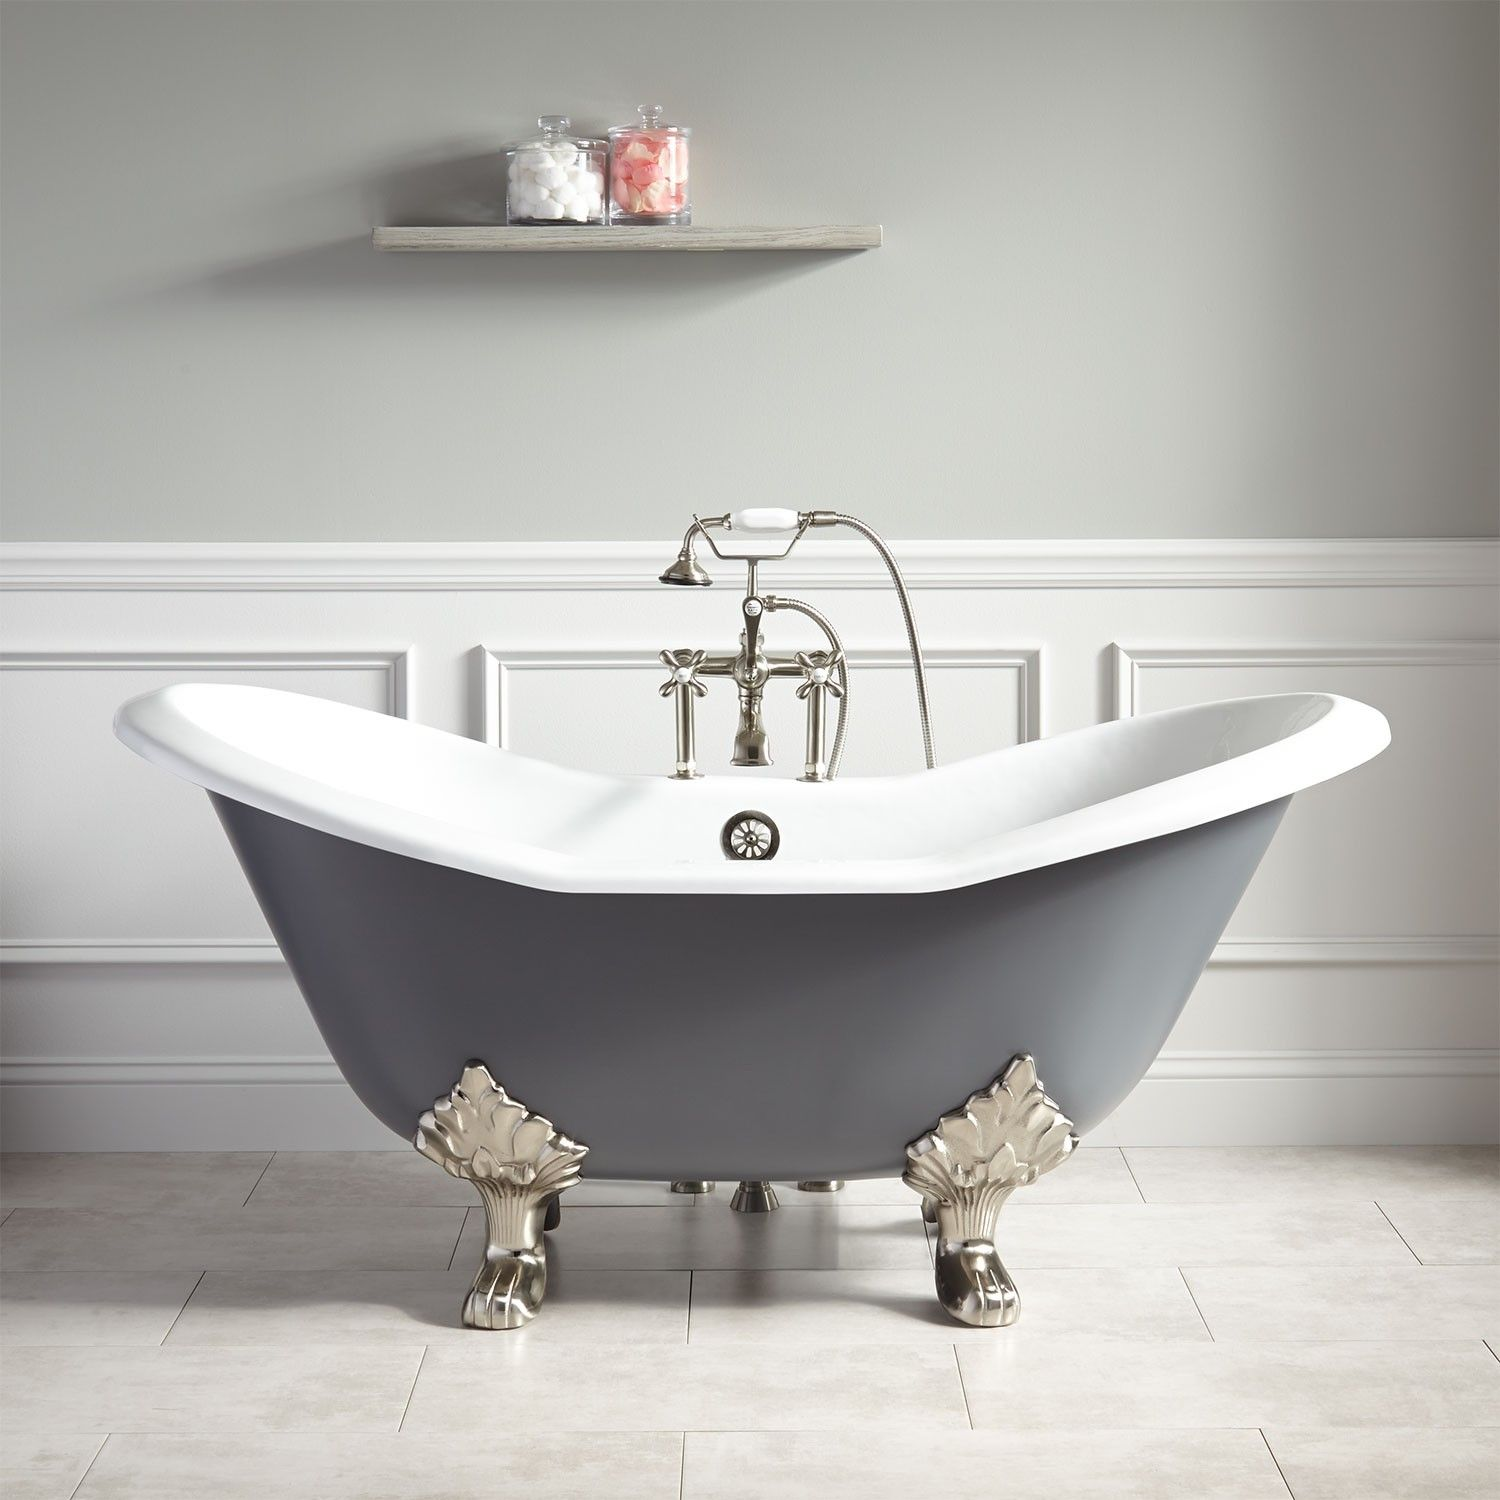 a and big tub photo window tiles dark sink large double bathroom view renderi with front white of